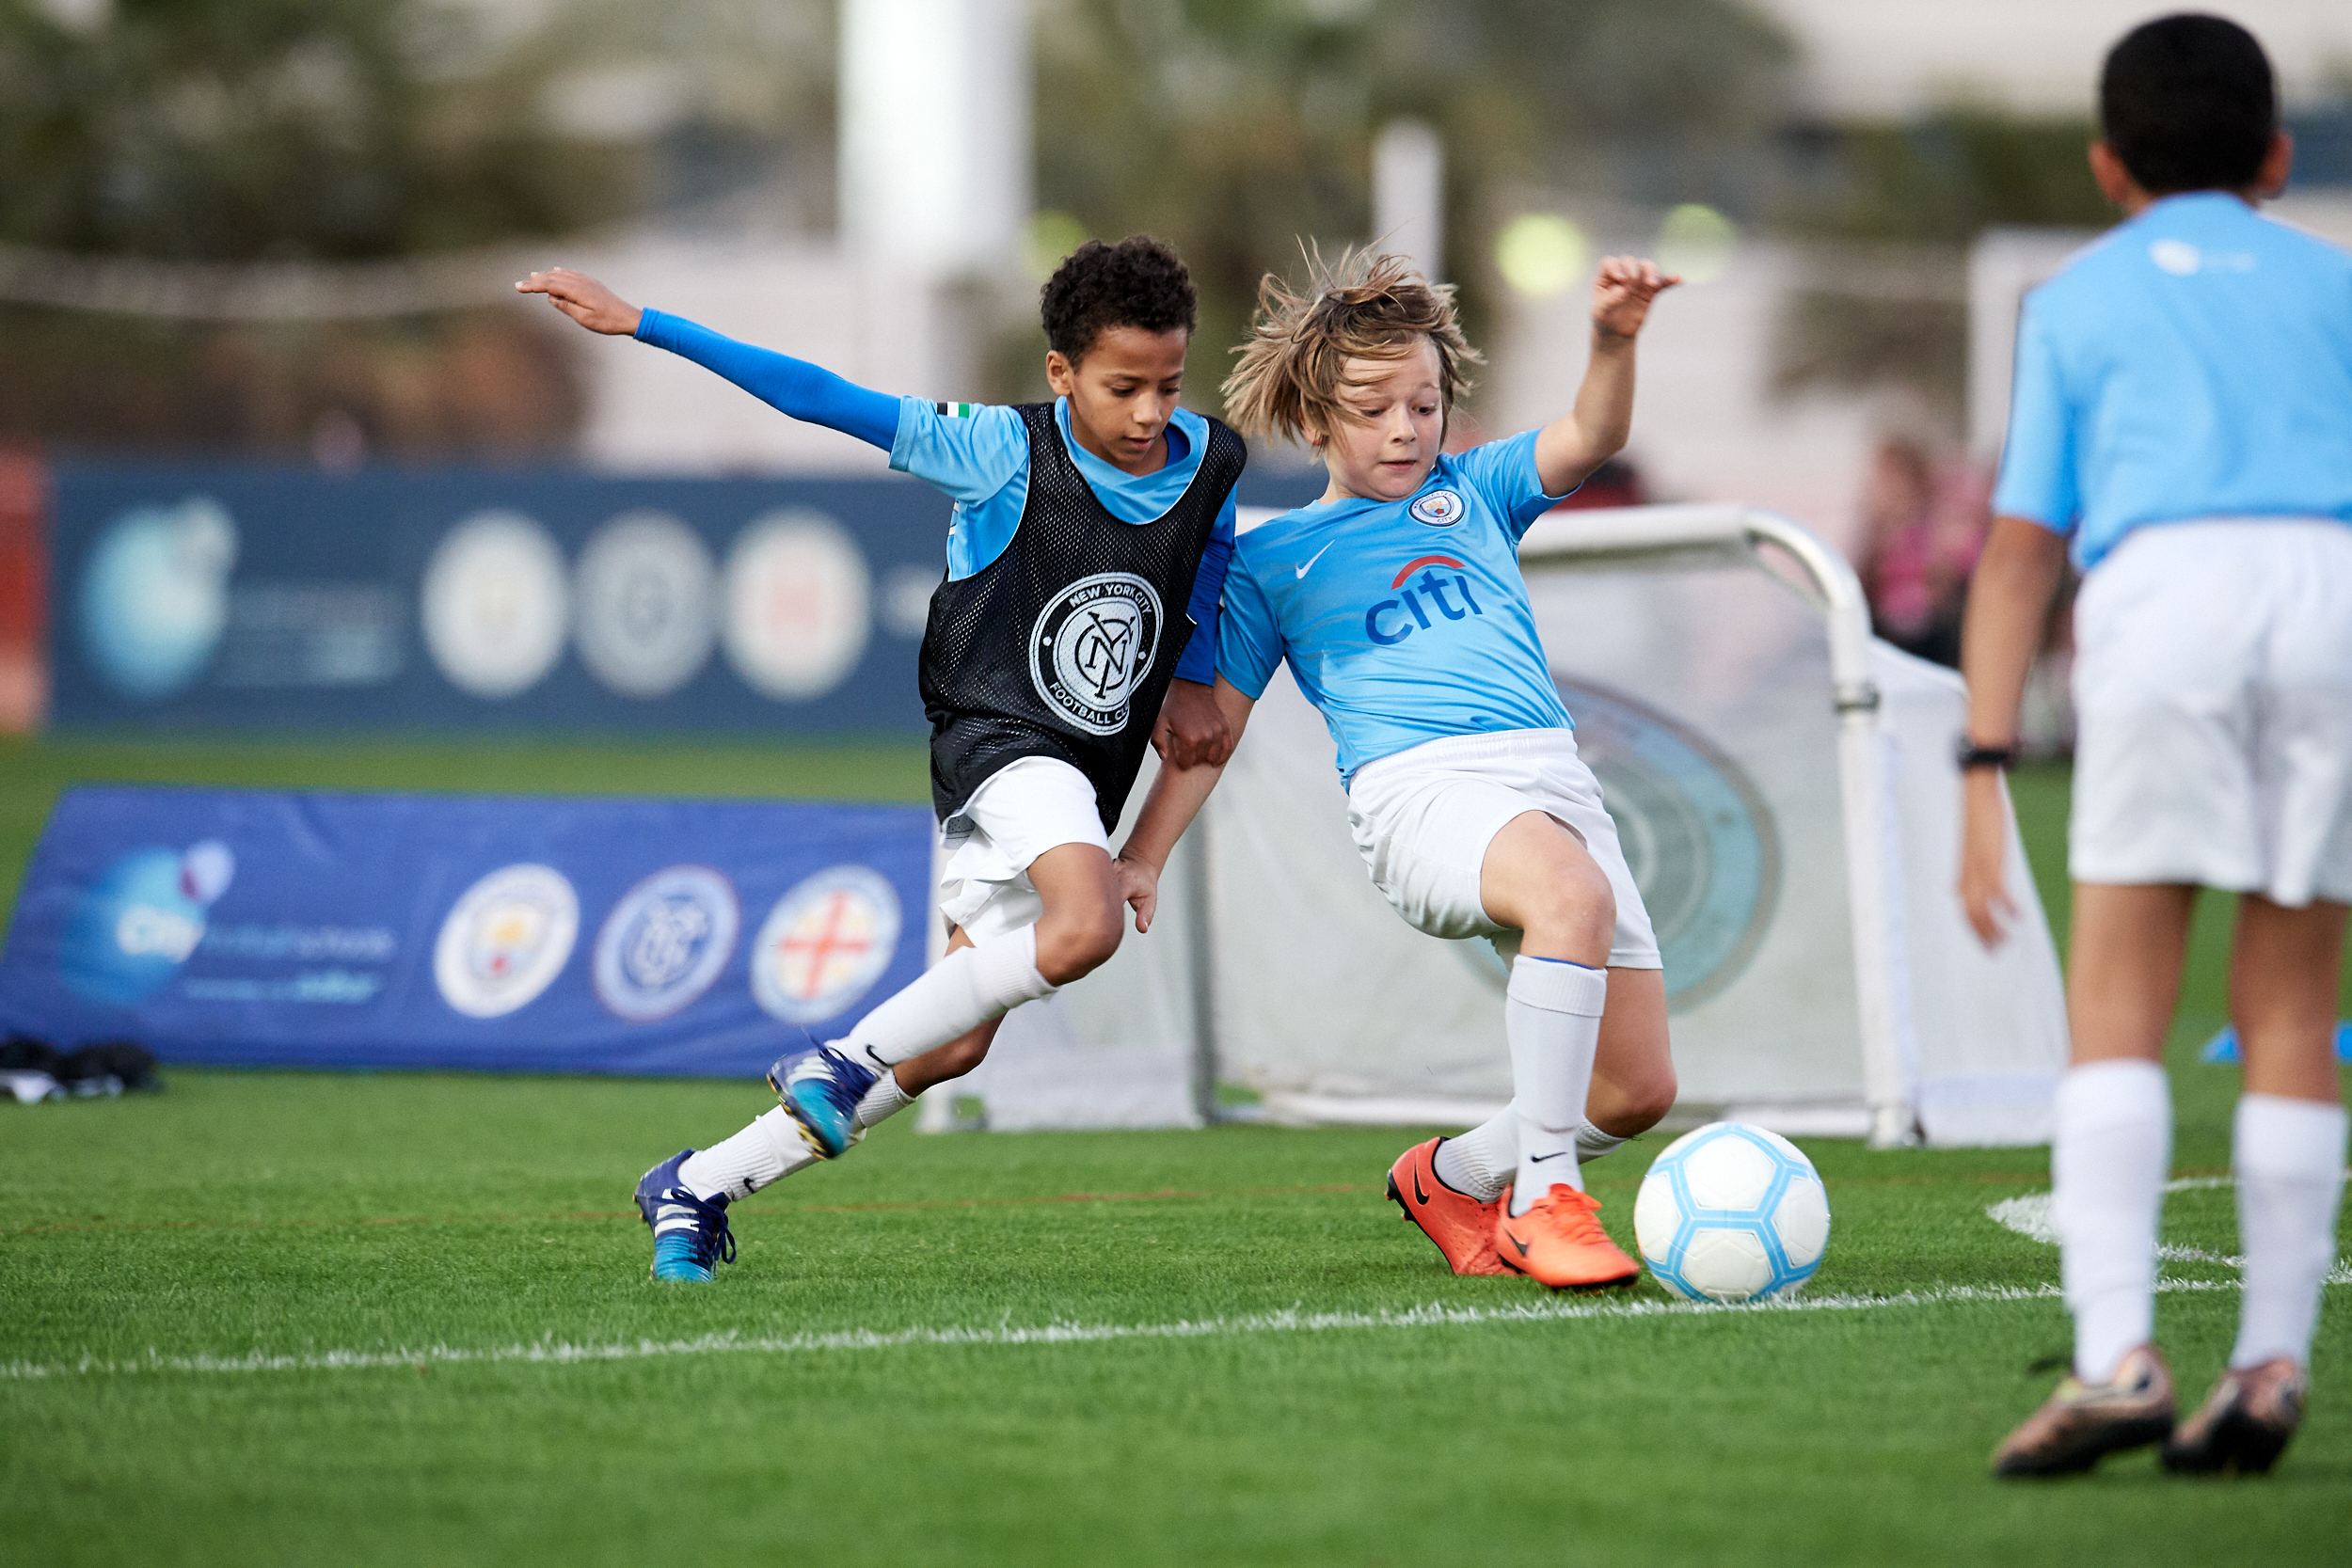 etihad airways fly in young new york city fc stars to coach youth players in abu dhabi2